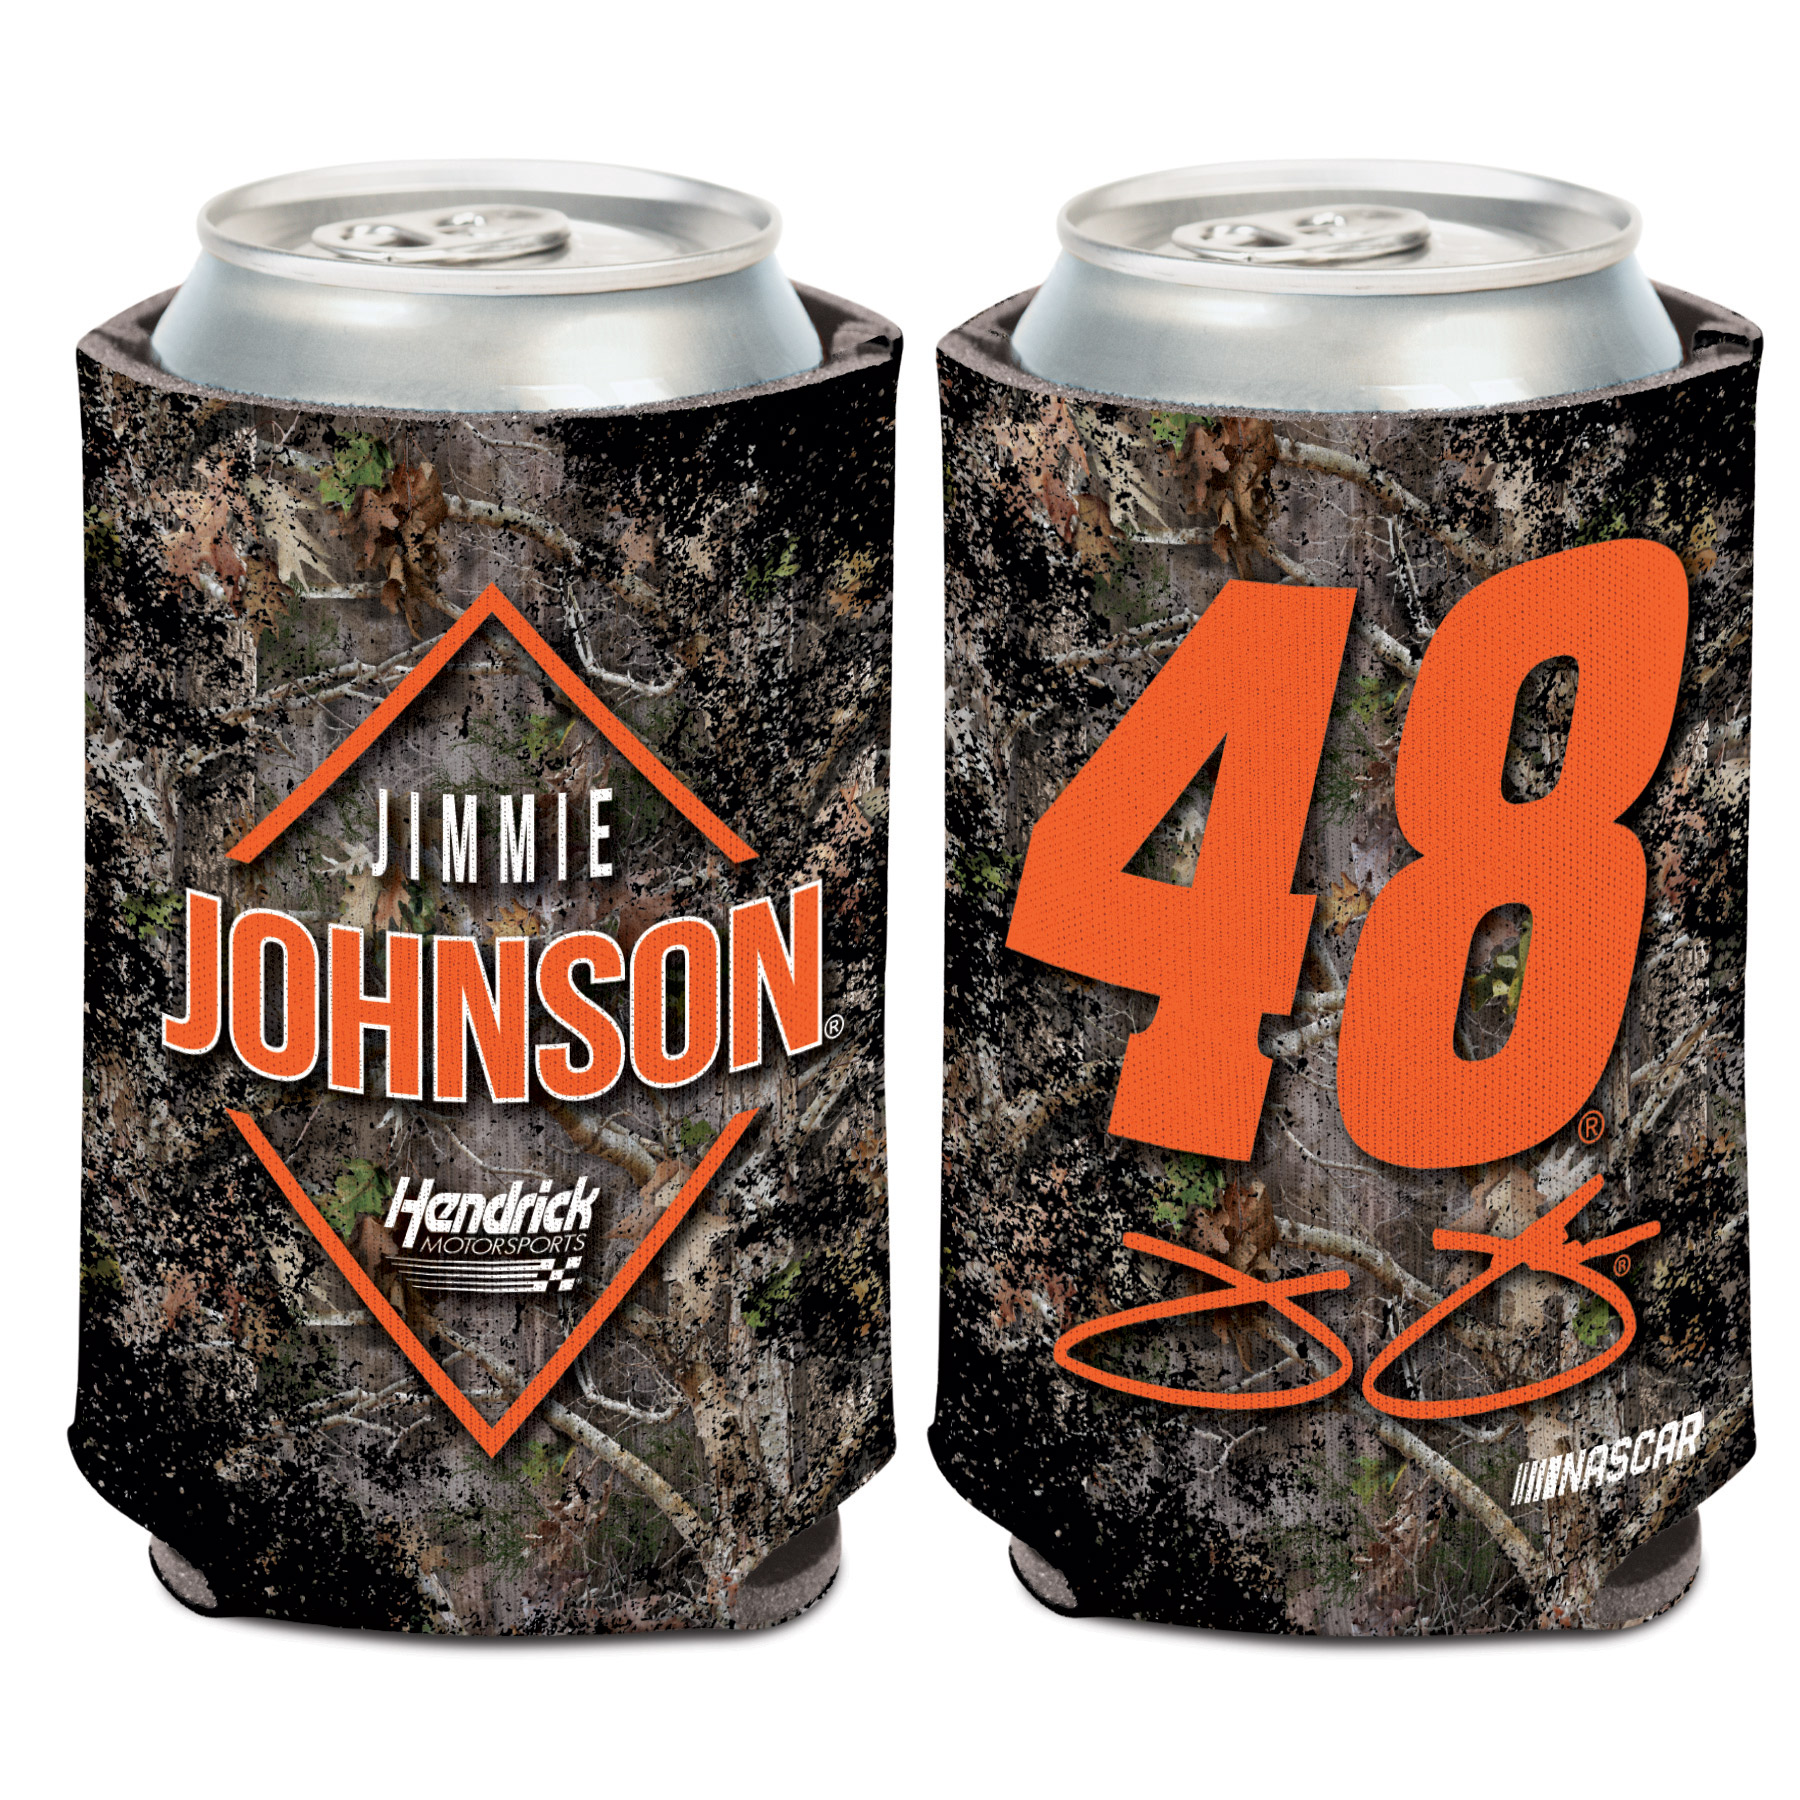 Jimmie Johnson WinCraft 2018 Camo 12oz. Can Cooler - No Size